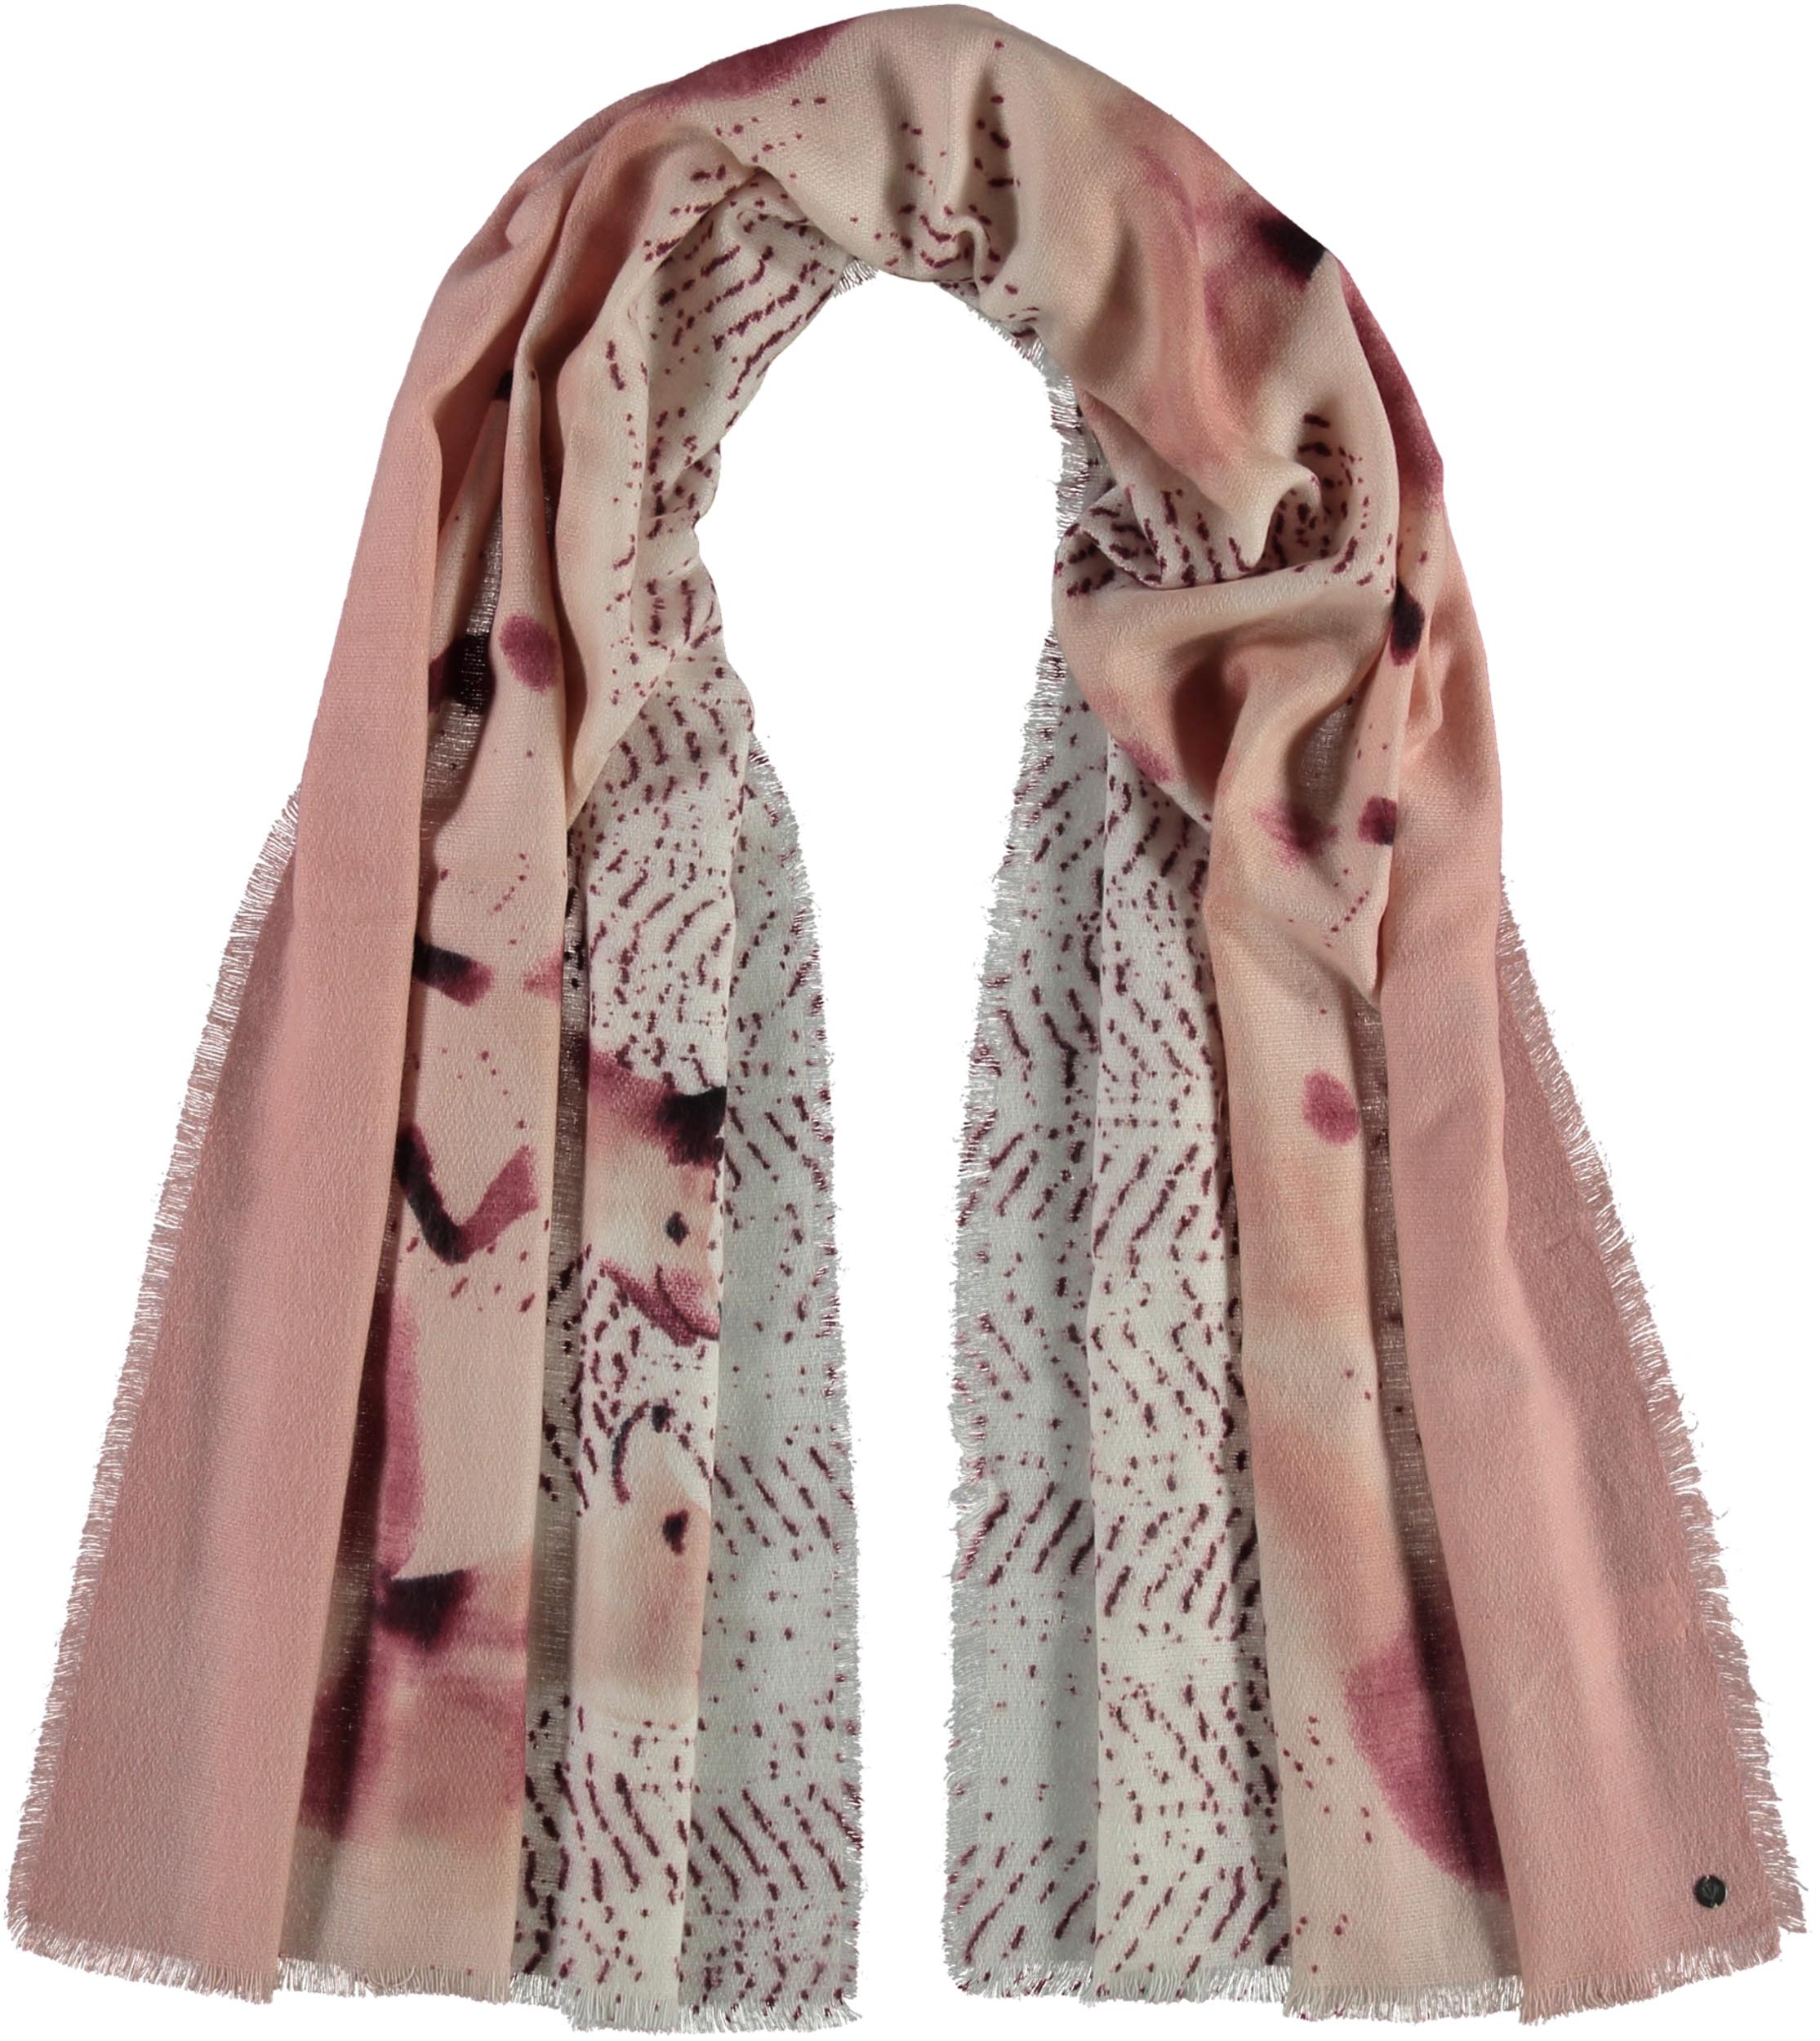 Sly Fox Printed Acrylic Wrap Scarf